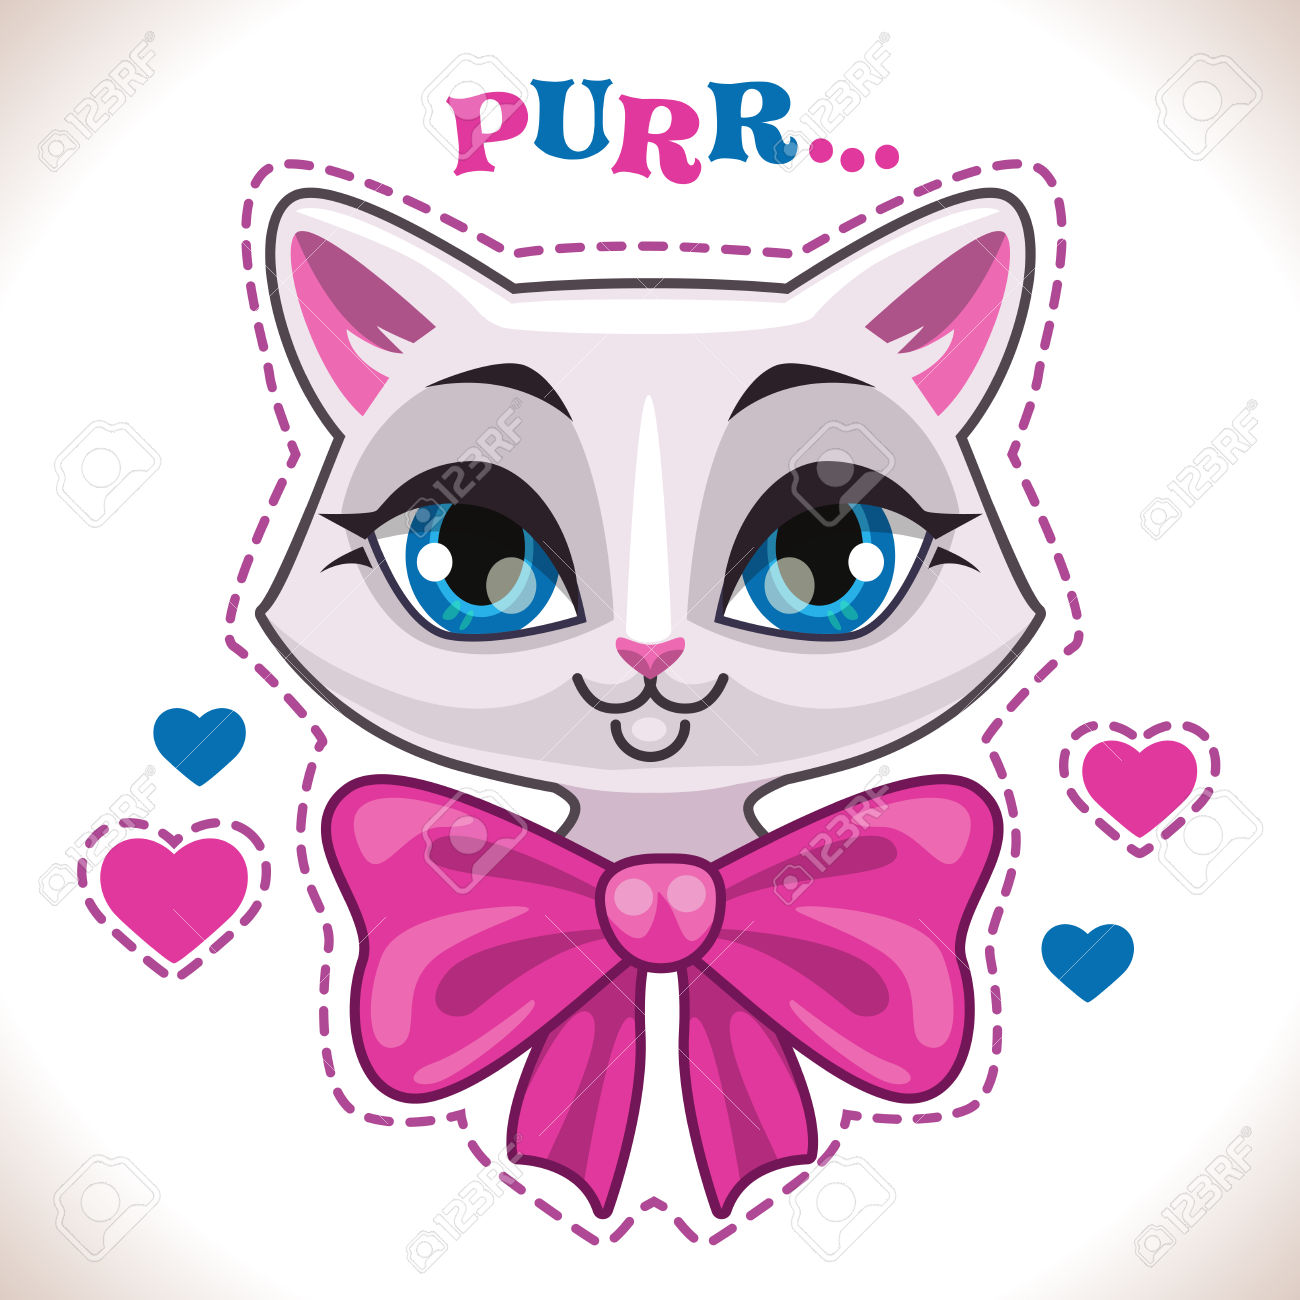 57,862 Cute Cat Stock Vector Illustration And Royalty Free Cute.